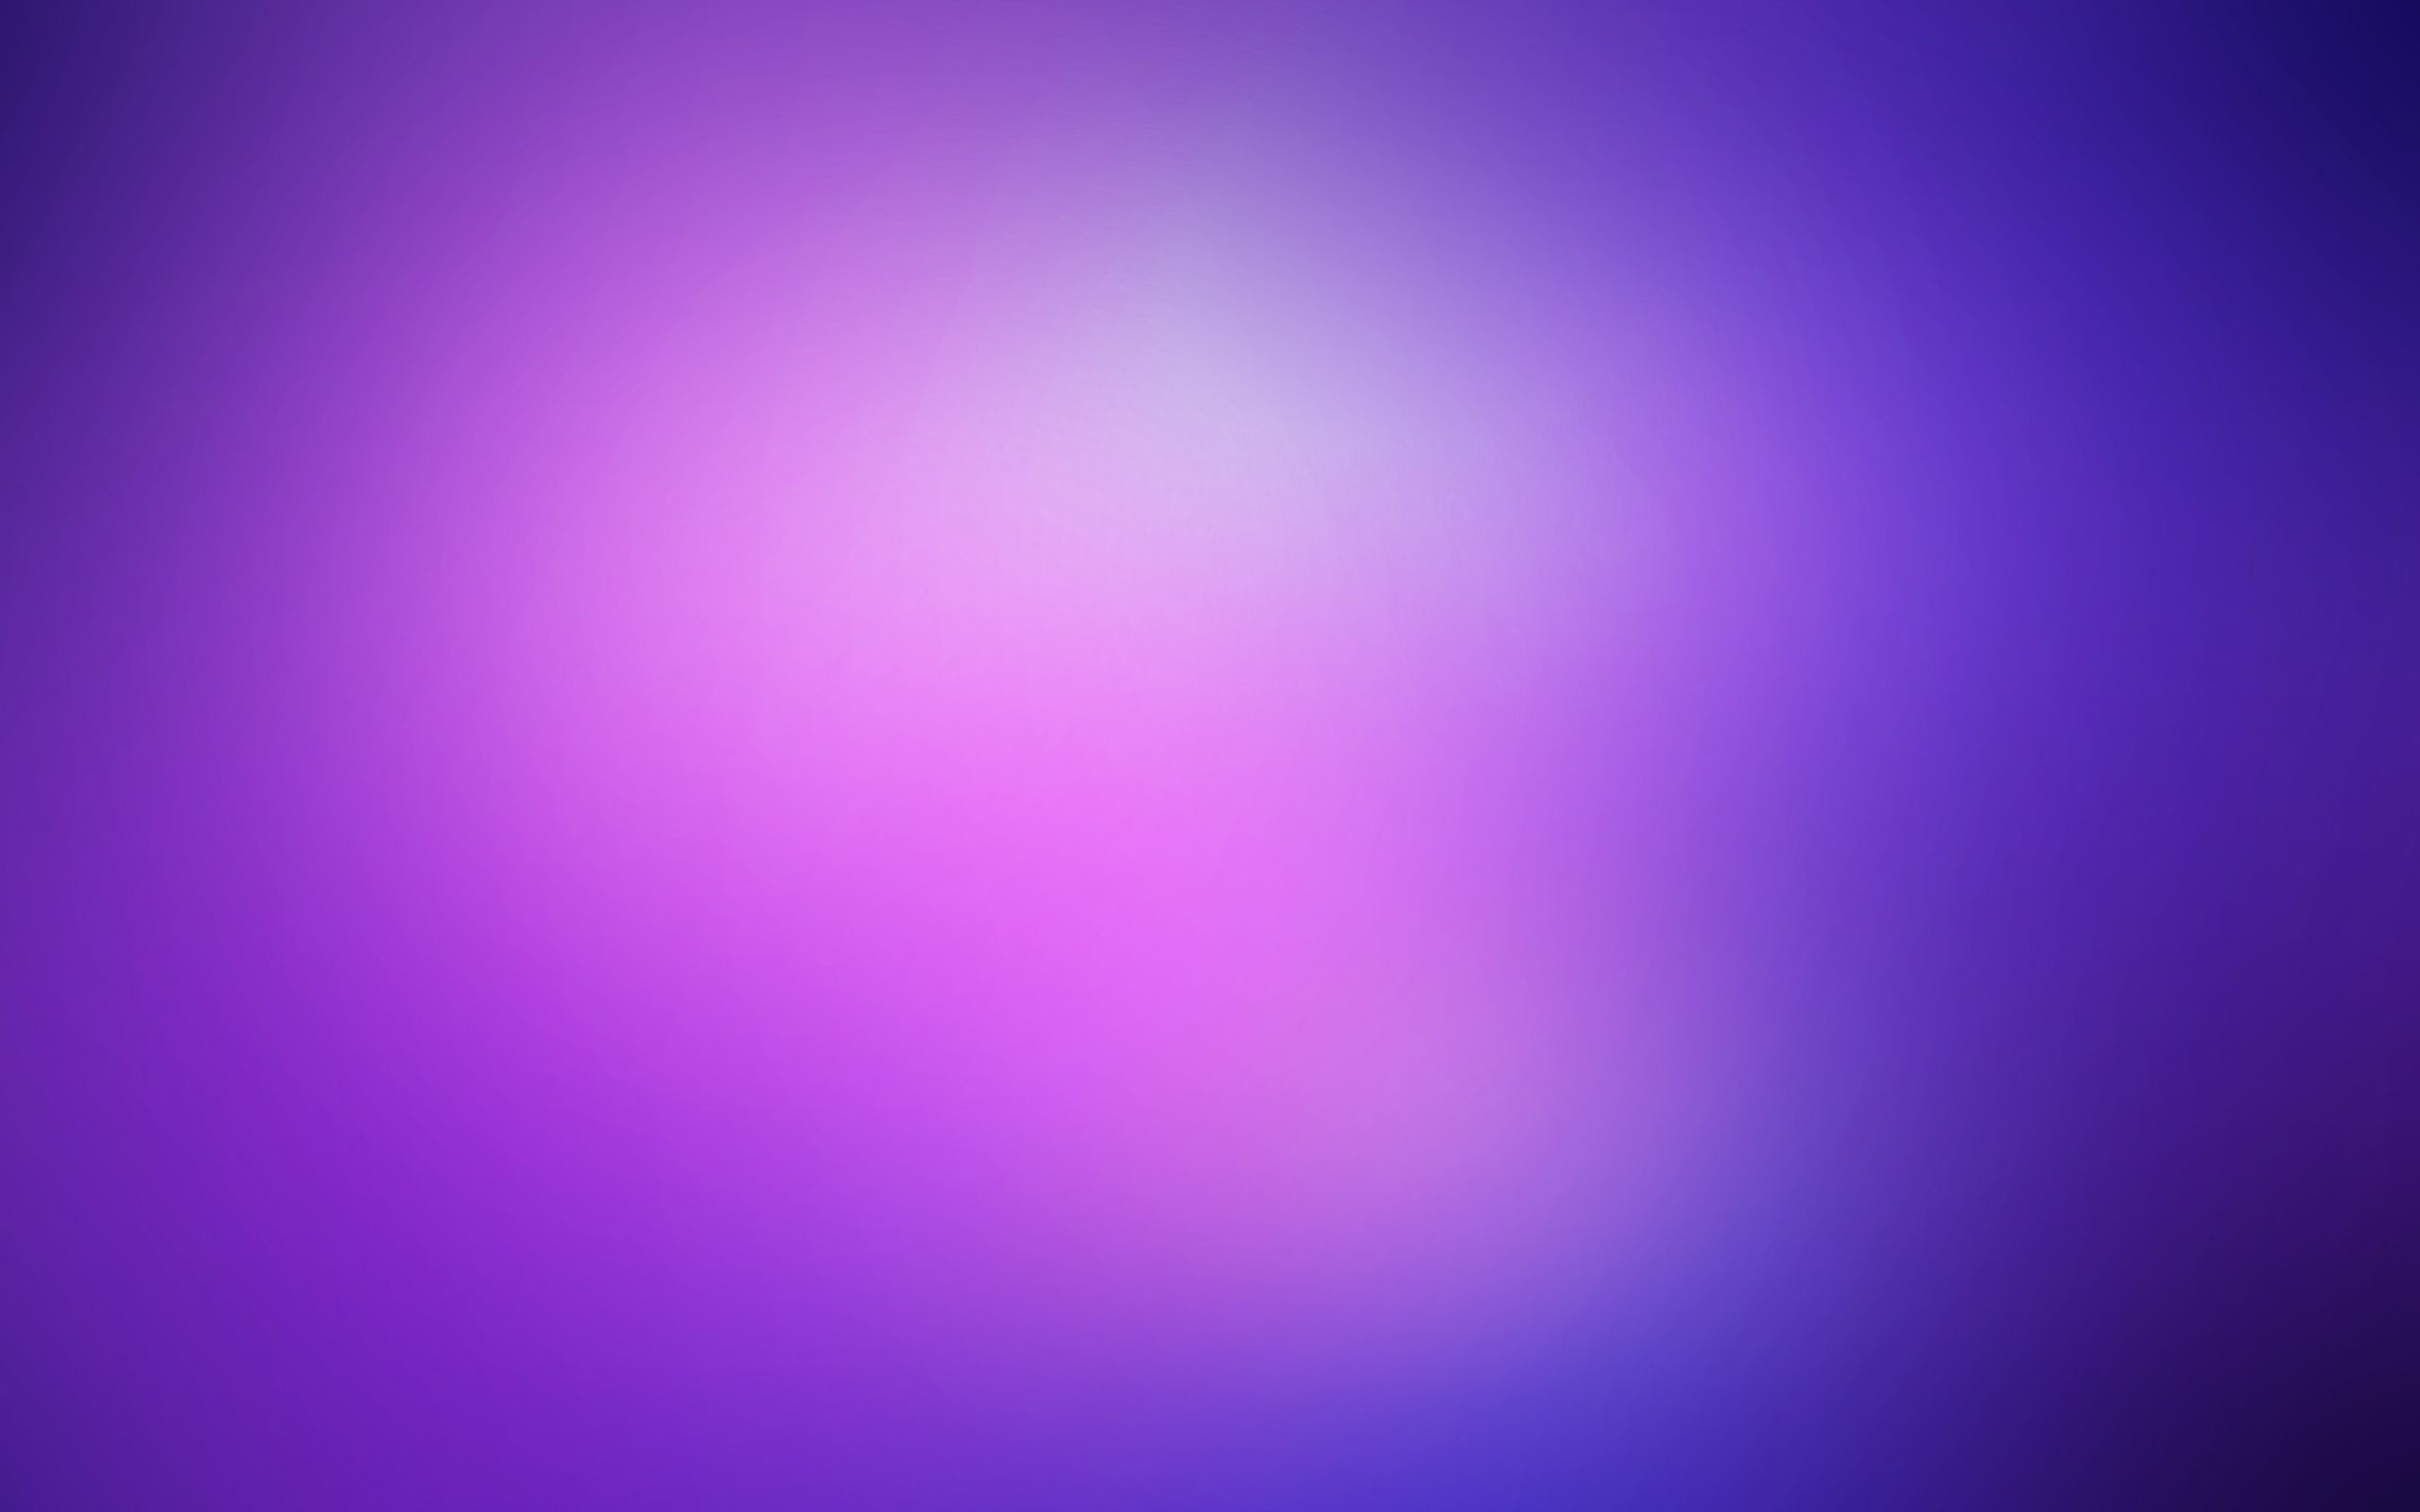 Plain Colorful Wallpaper